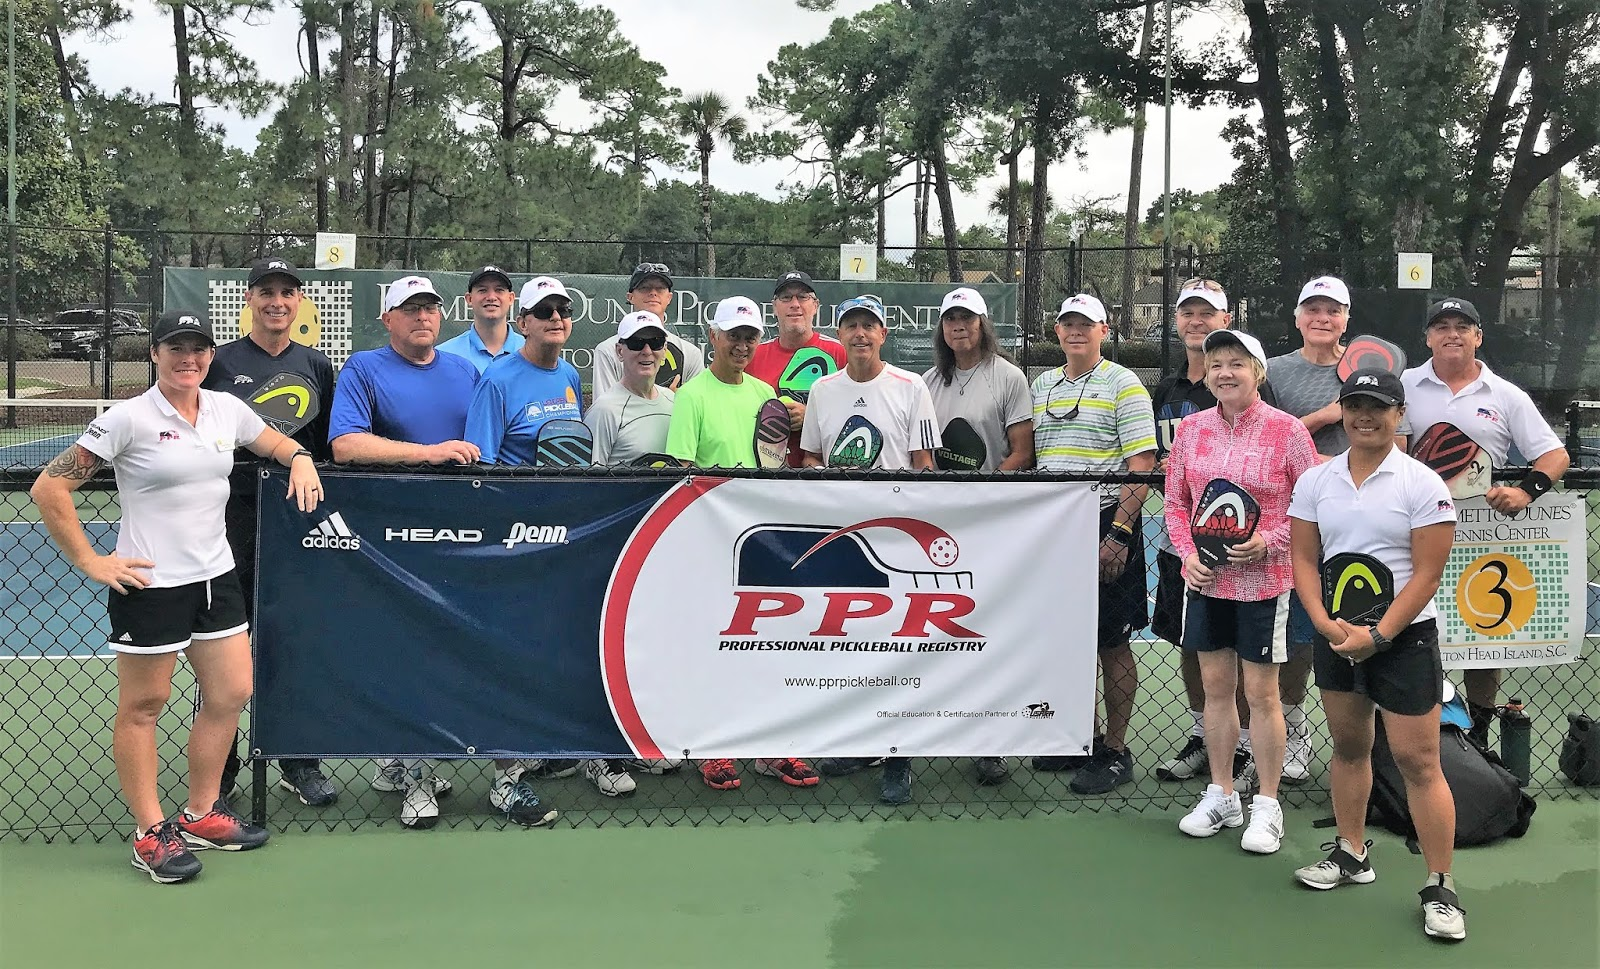 Ptrppr Professional Pickleball Coaching Certification Workshop